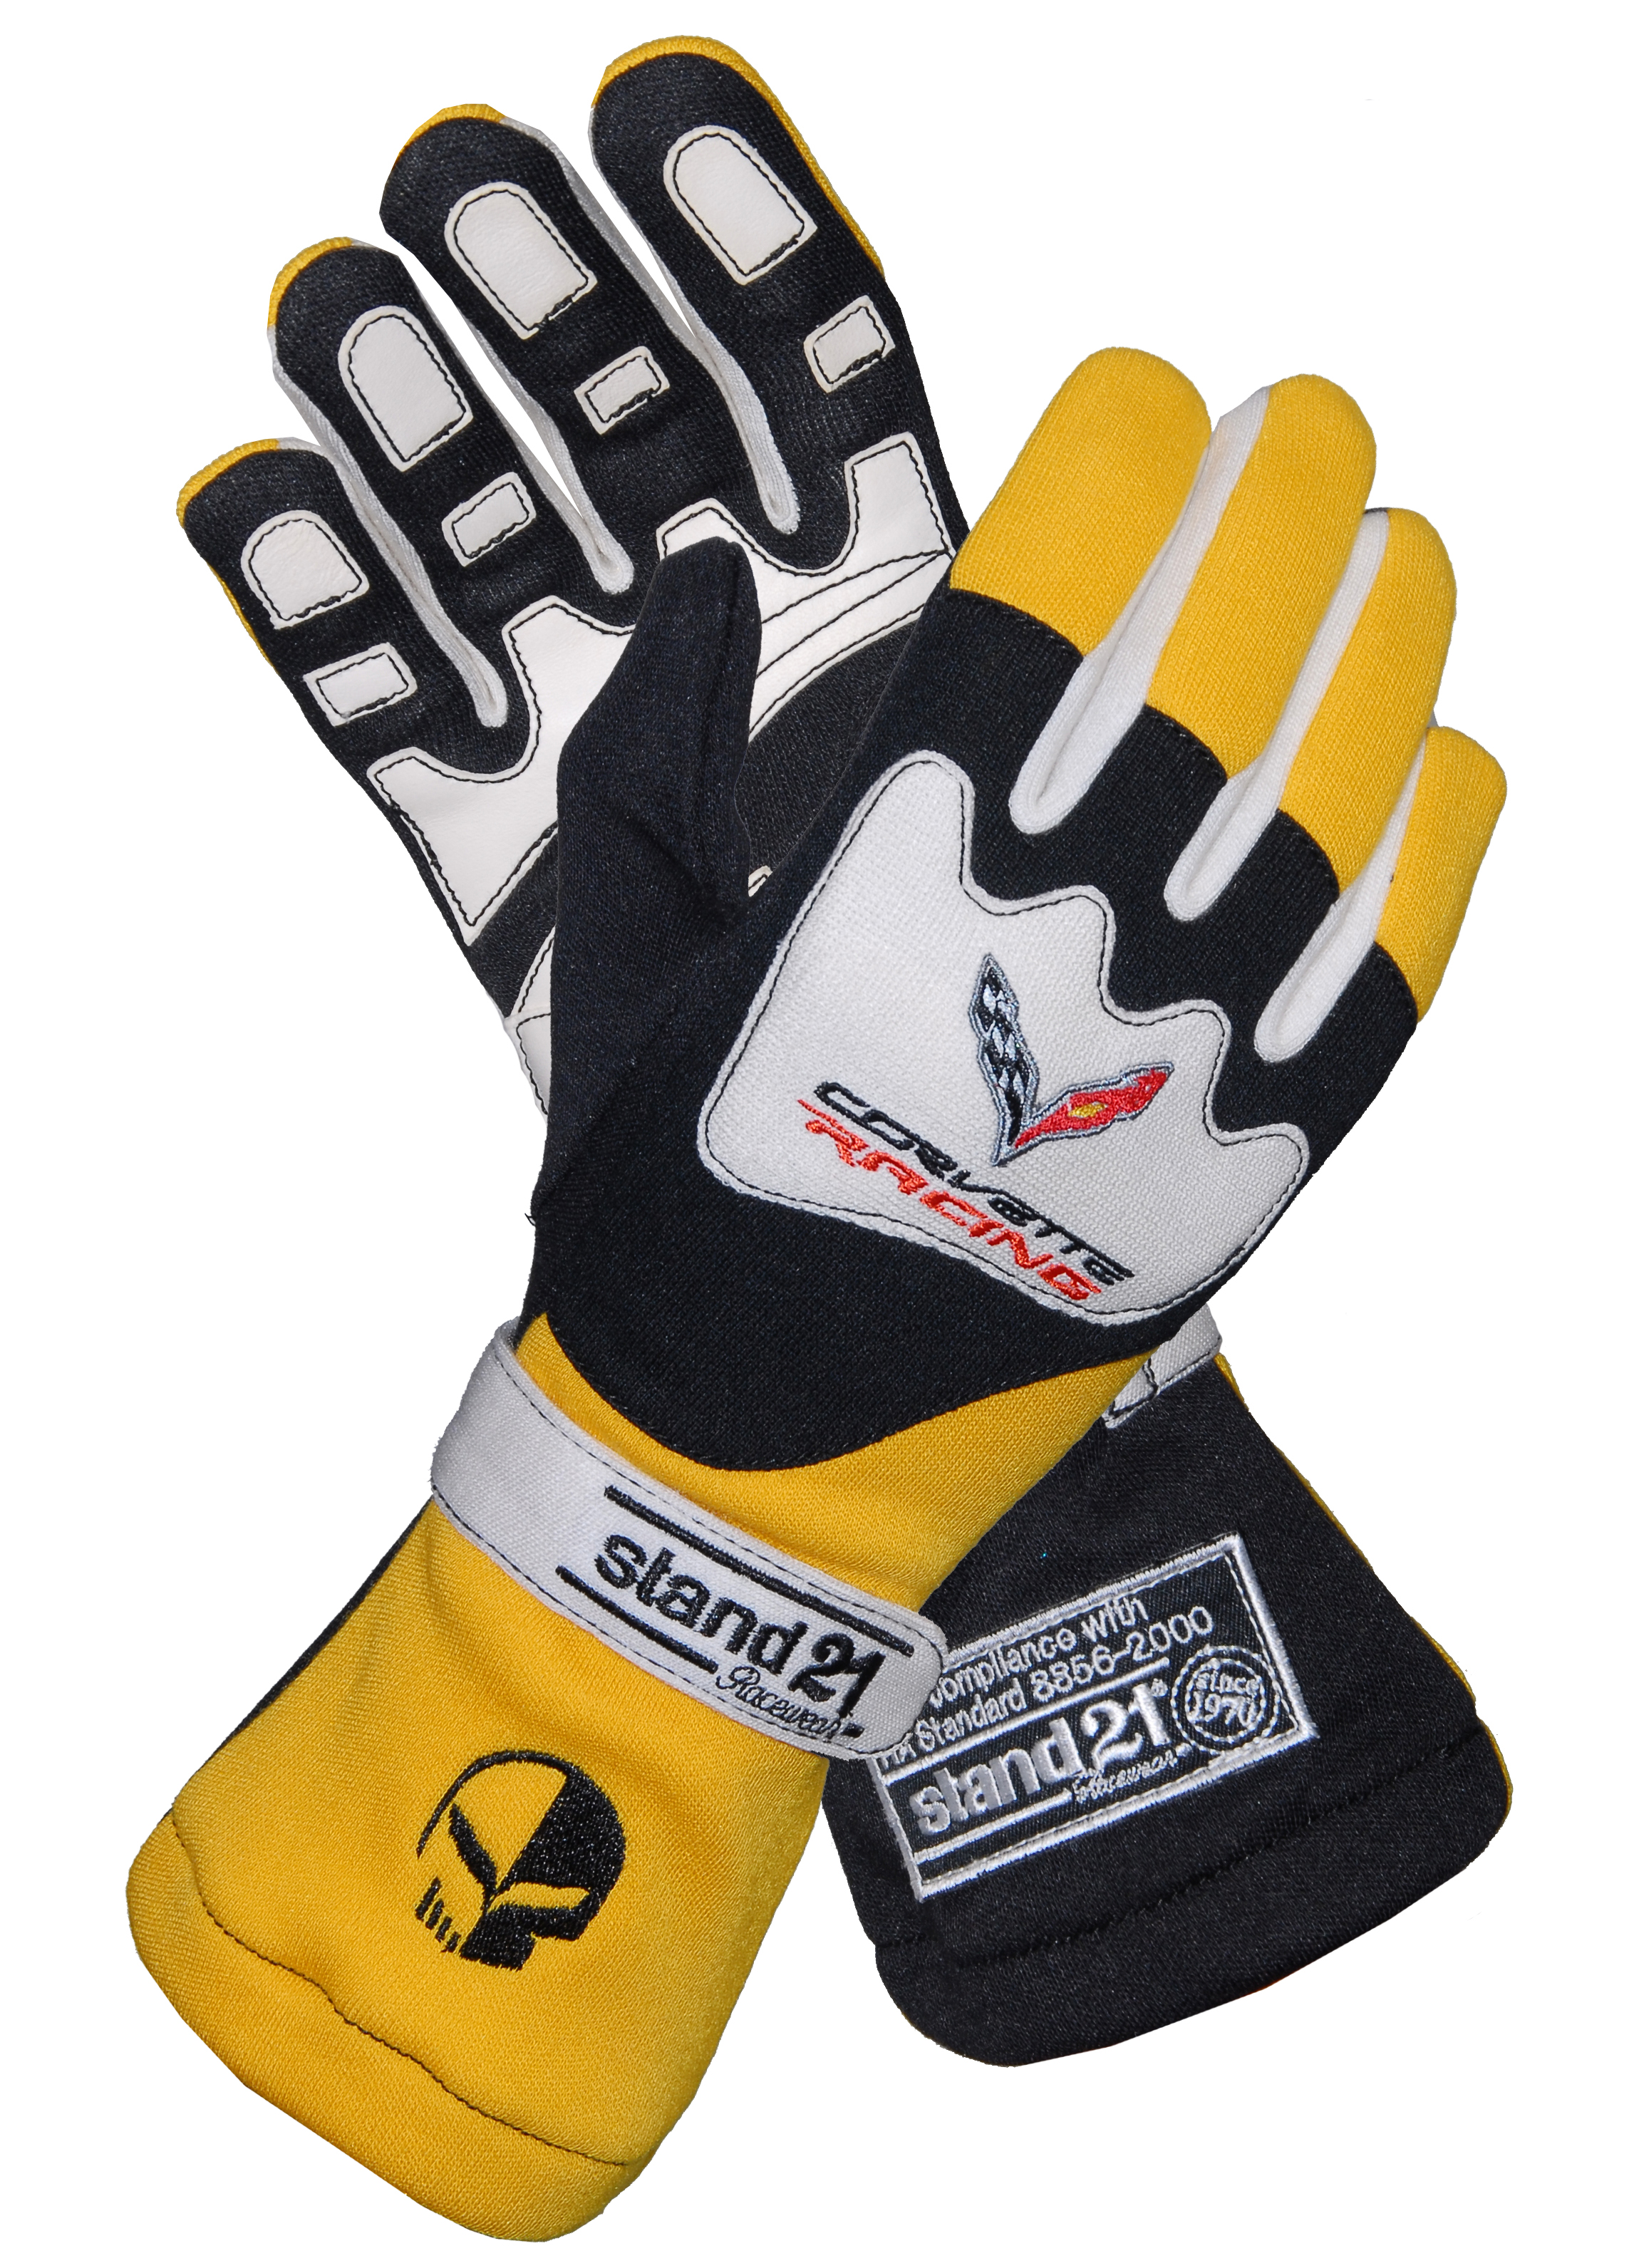 Corvette Daytona gloves